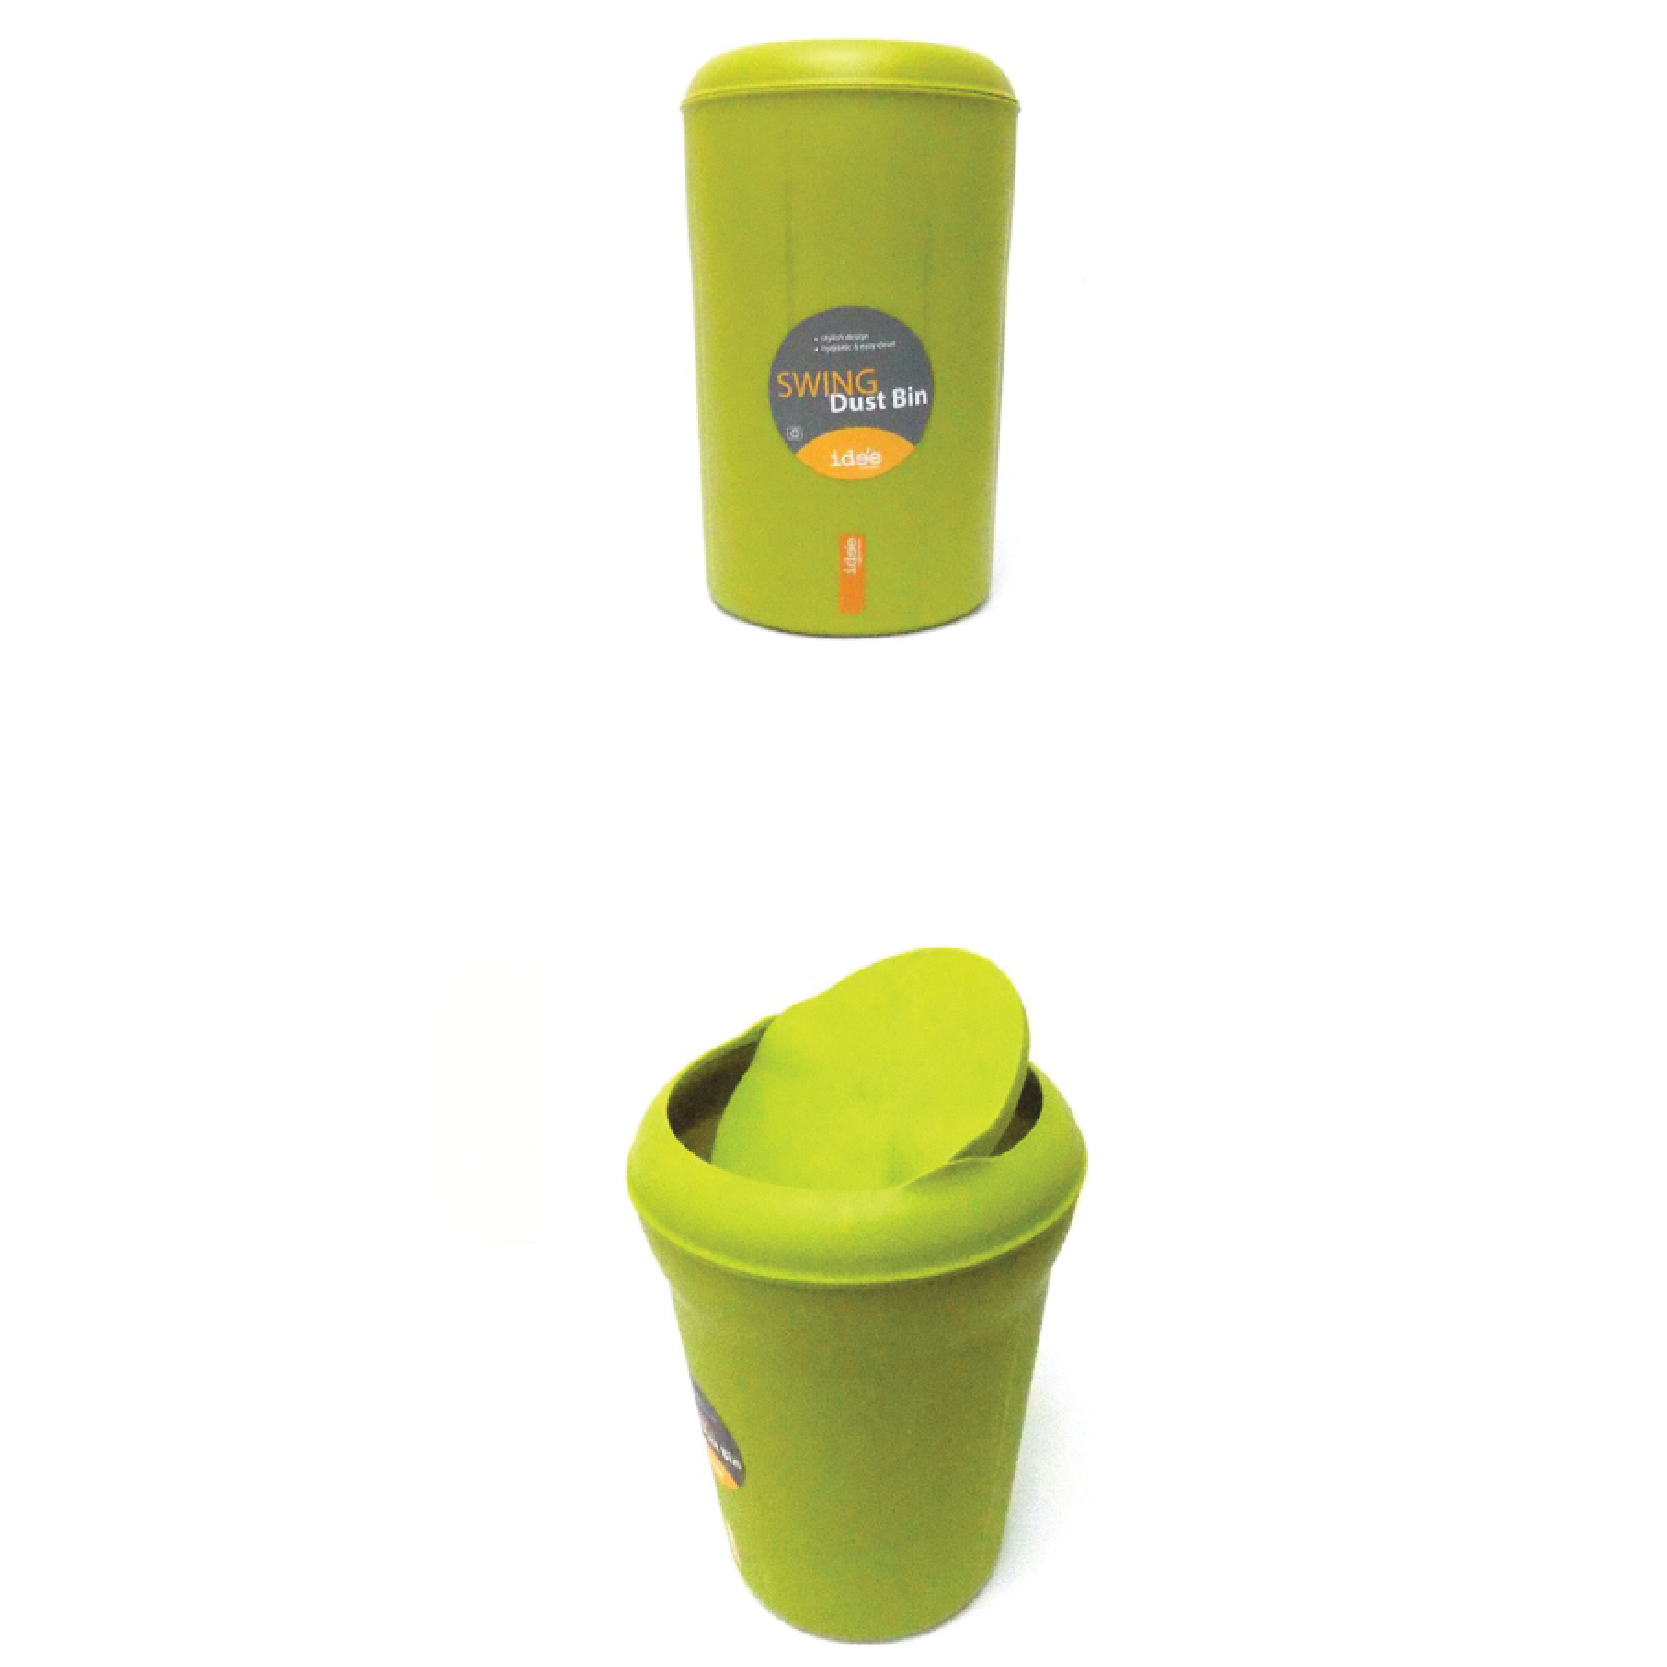 SWING Bin 11L ( 4 Colour Options )